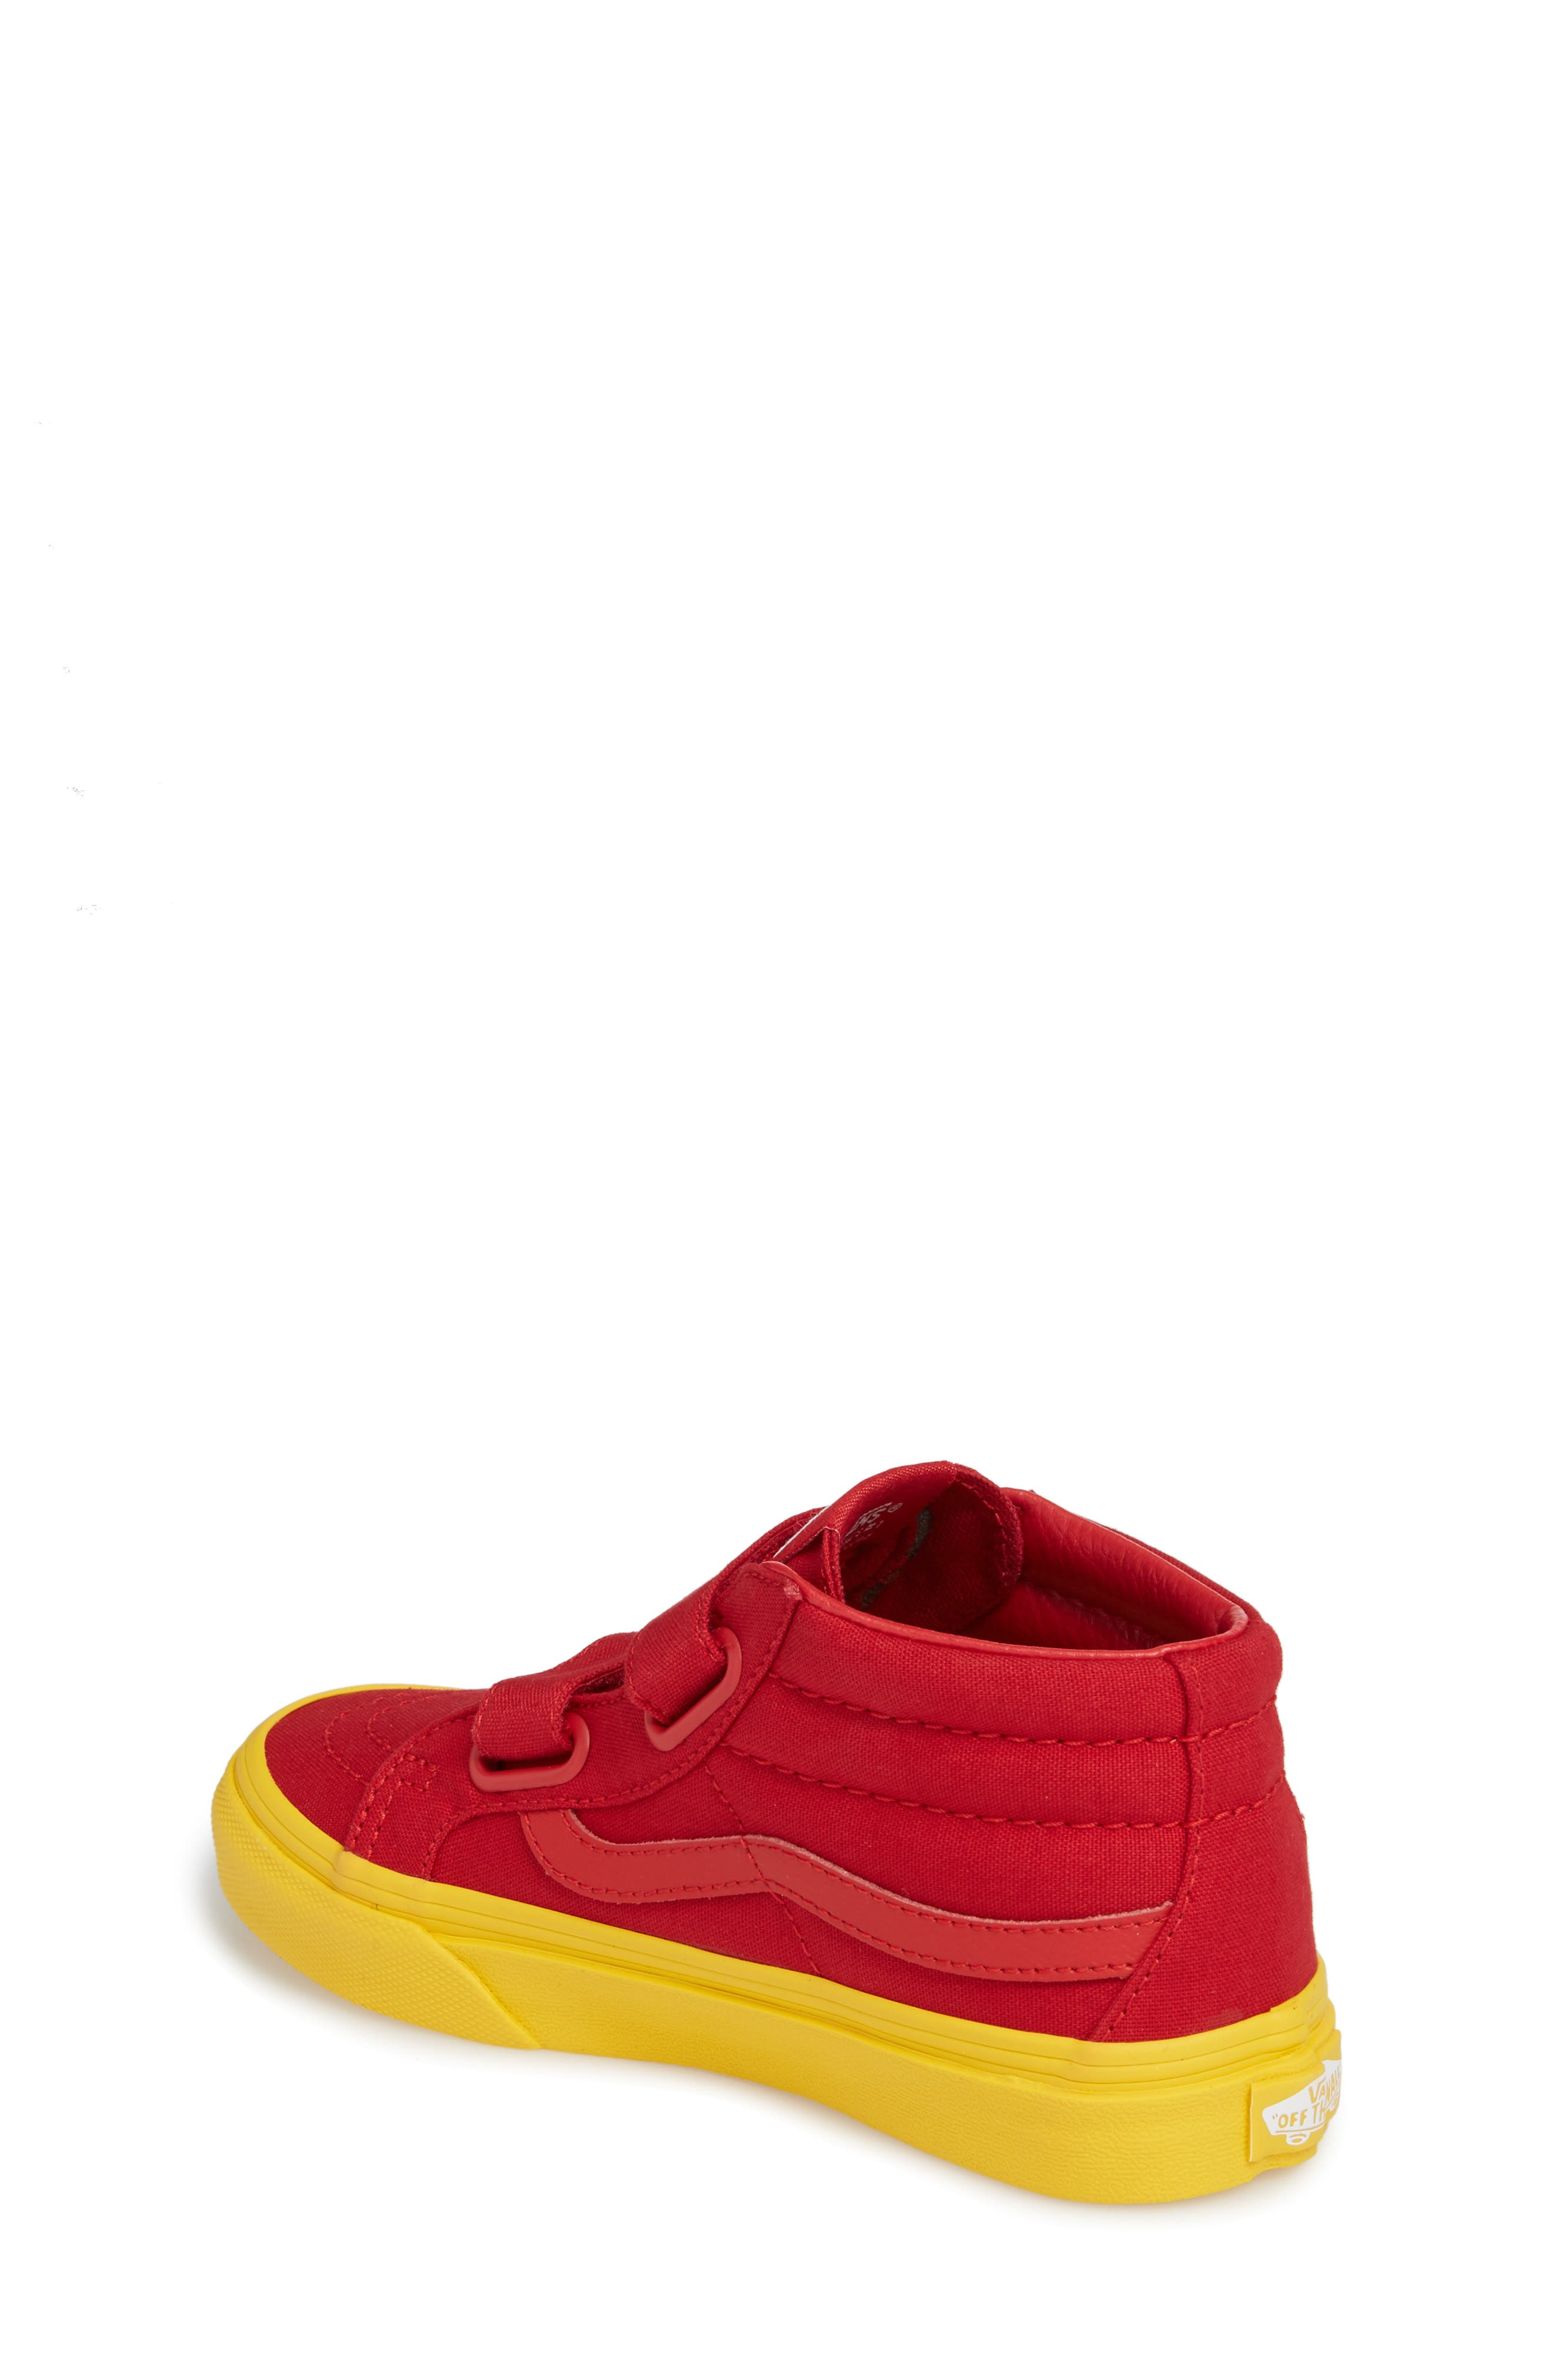 Sk8-Mid Reissue Sneaker,                             Alternate thumbnail 2, color,                             Red/ Gold Cosplay